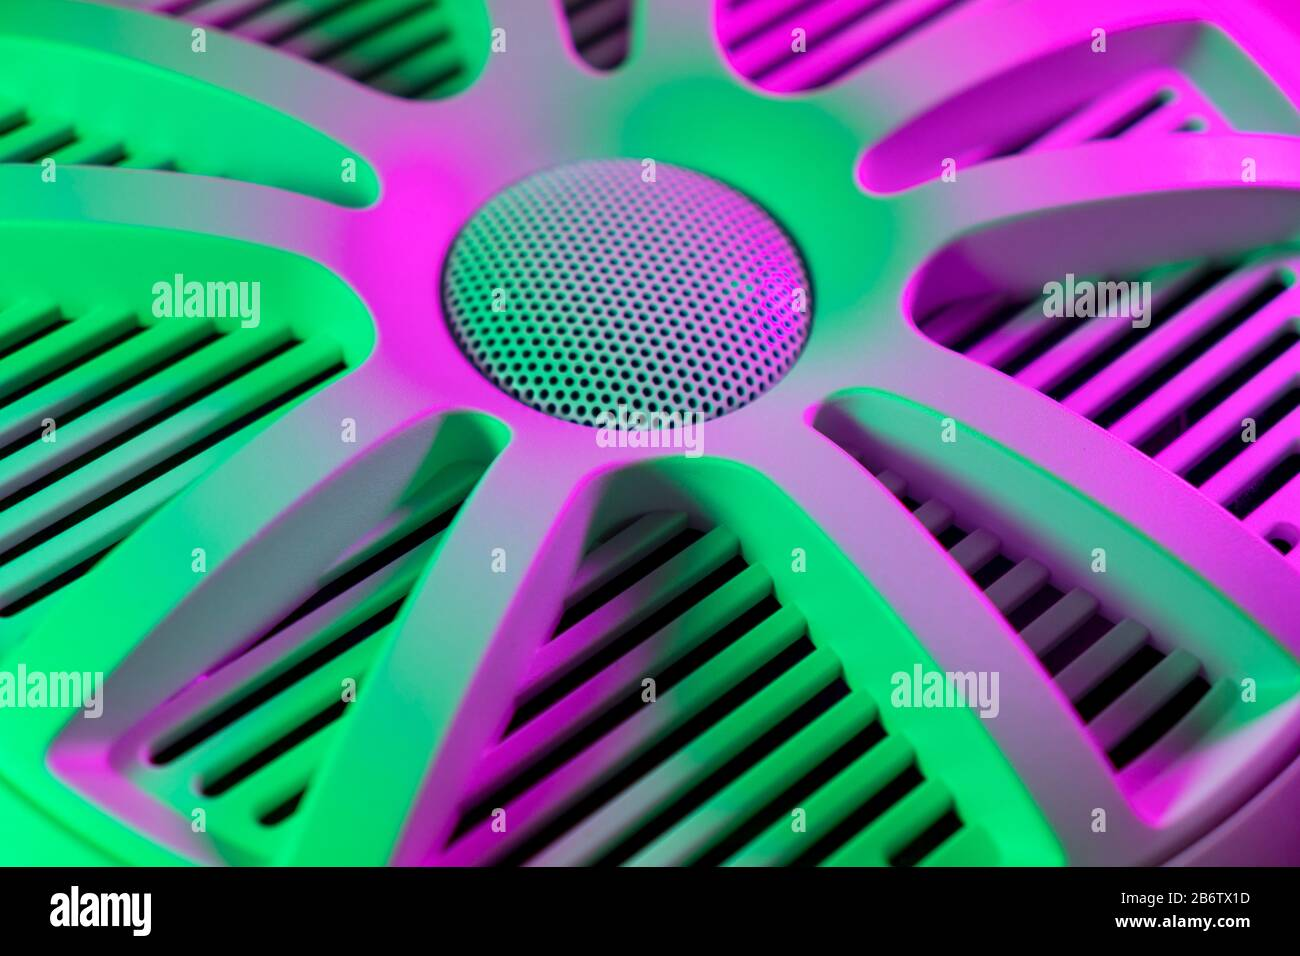 Colorful Lights Of Car Stereo And Car Speakers Background Car Music Audio Speaker In Green And Pink Tones Modern Car Audio System Close Up Stock Photo Alamy